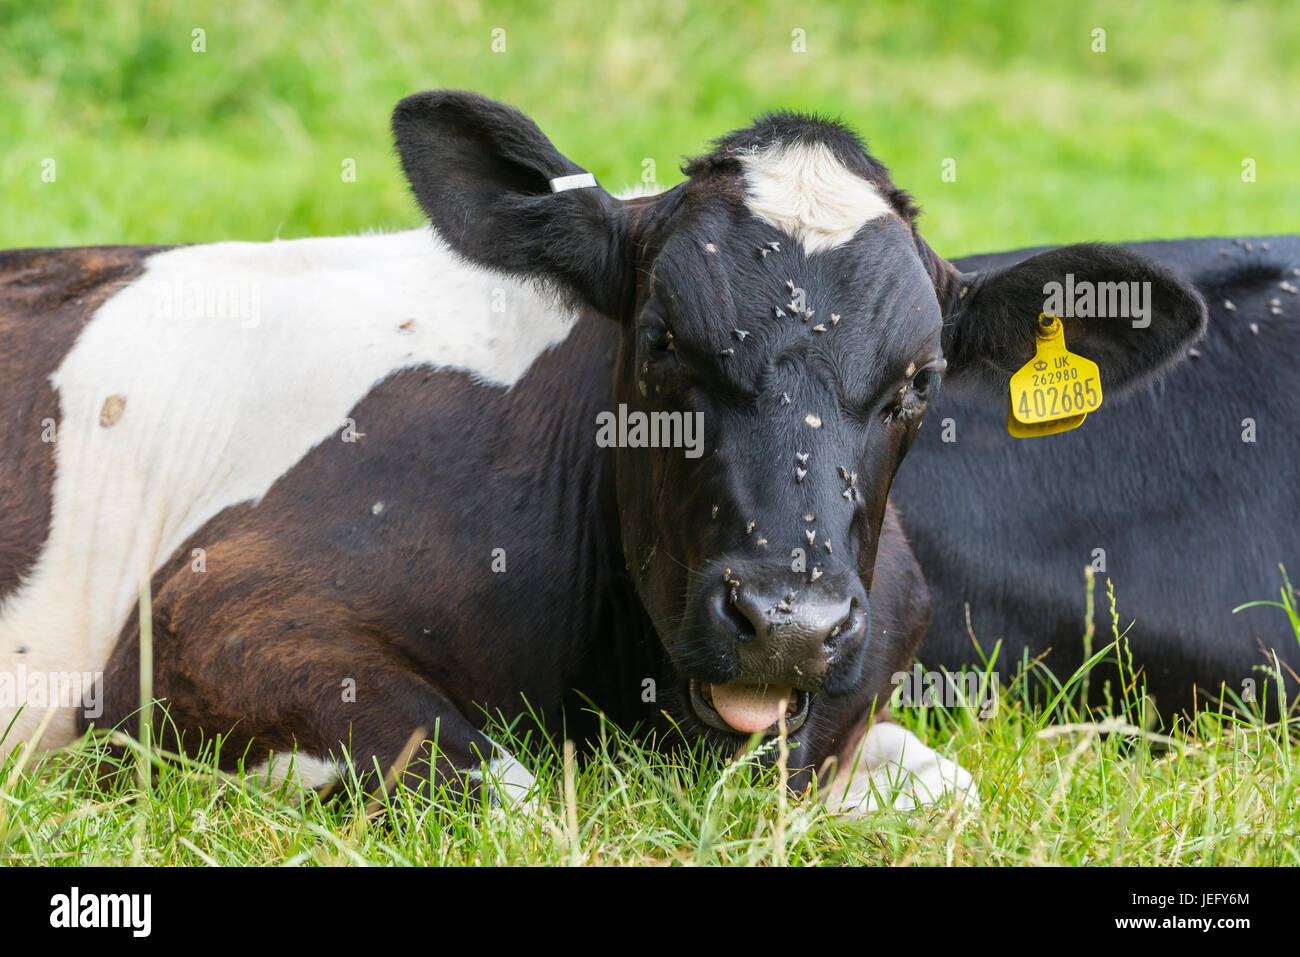 cow-with-flies-on-its-head-laying-down-JEFY6M.jpg